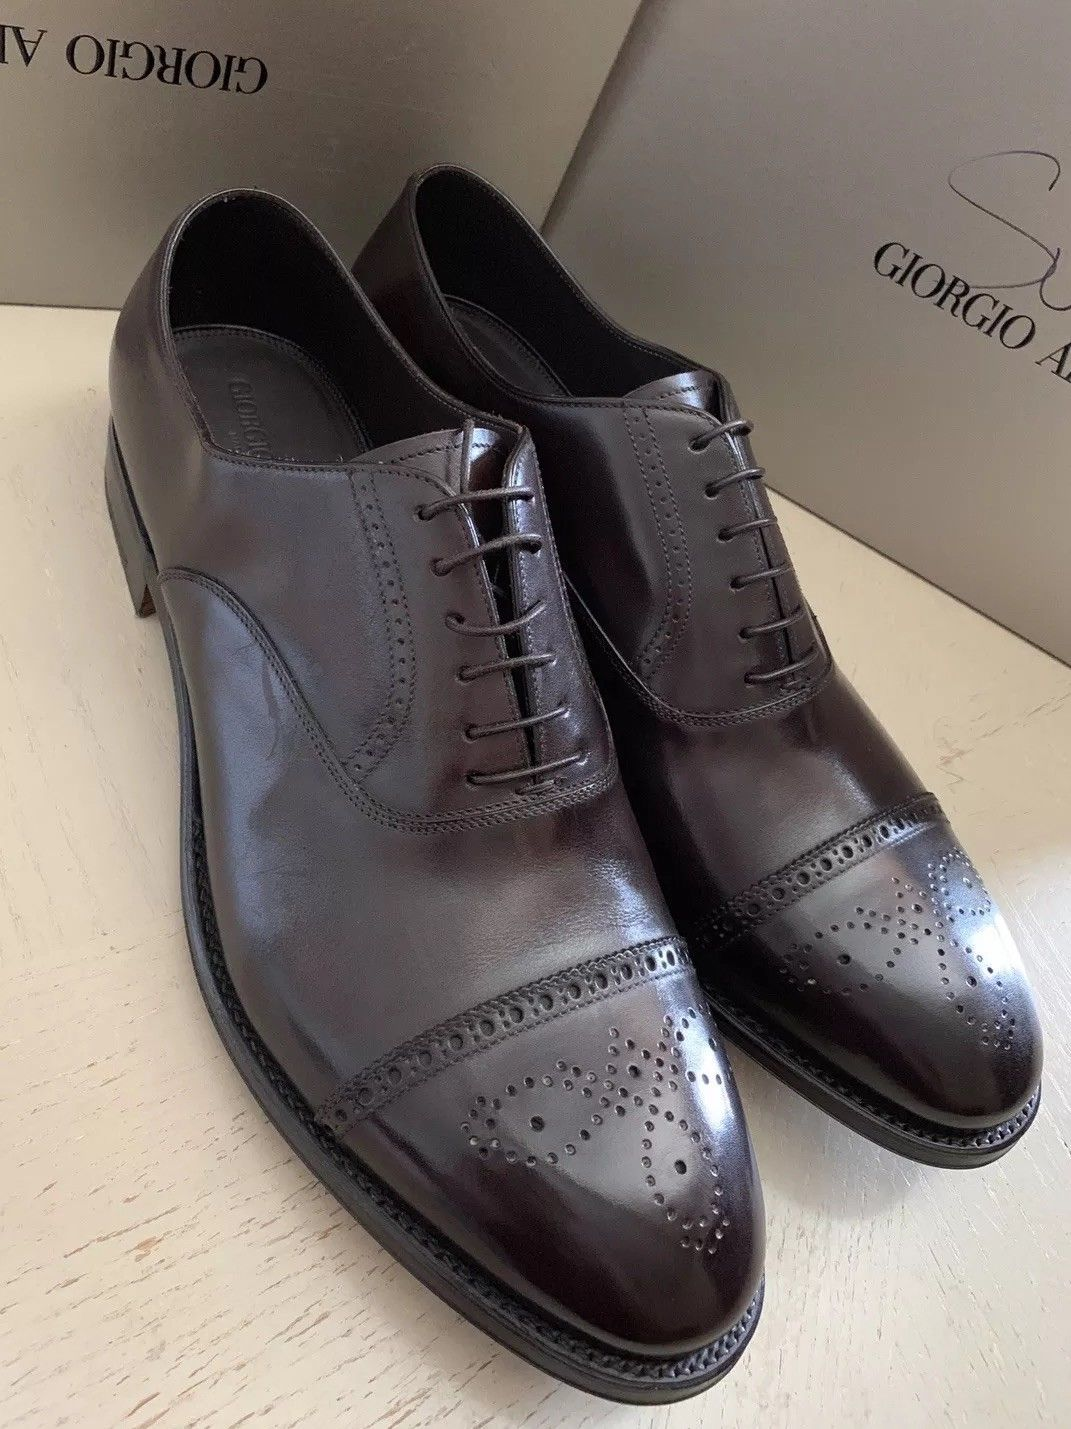 New $1495 Giorgio Armani Mens Leather Oxford Shoes DK Burgundy 12.5 US X2C482